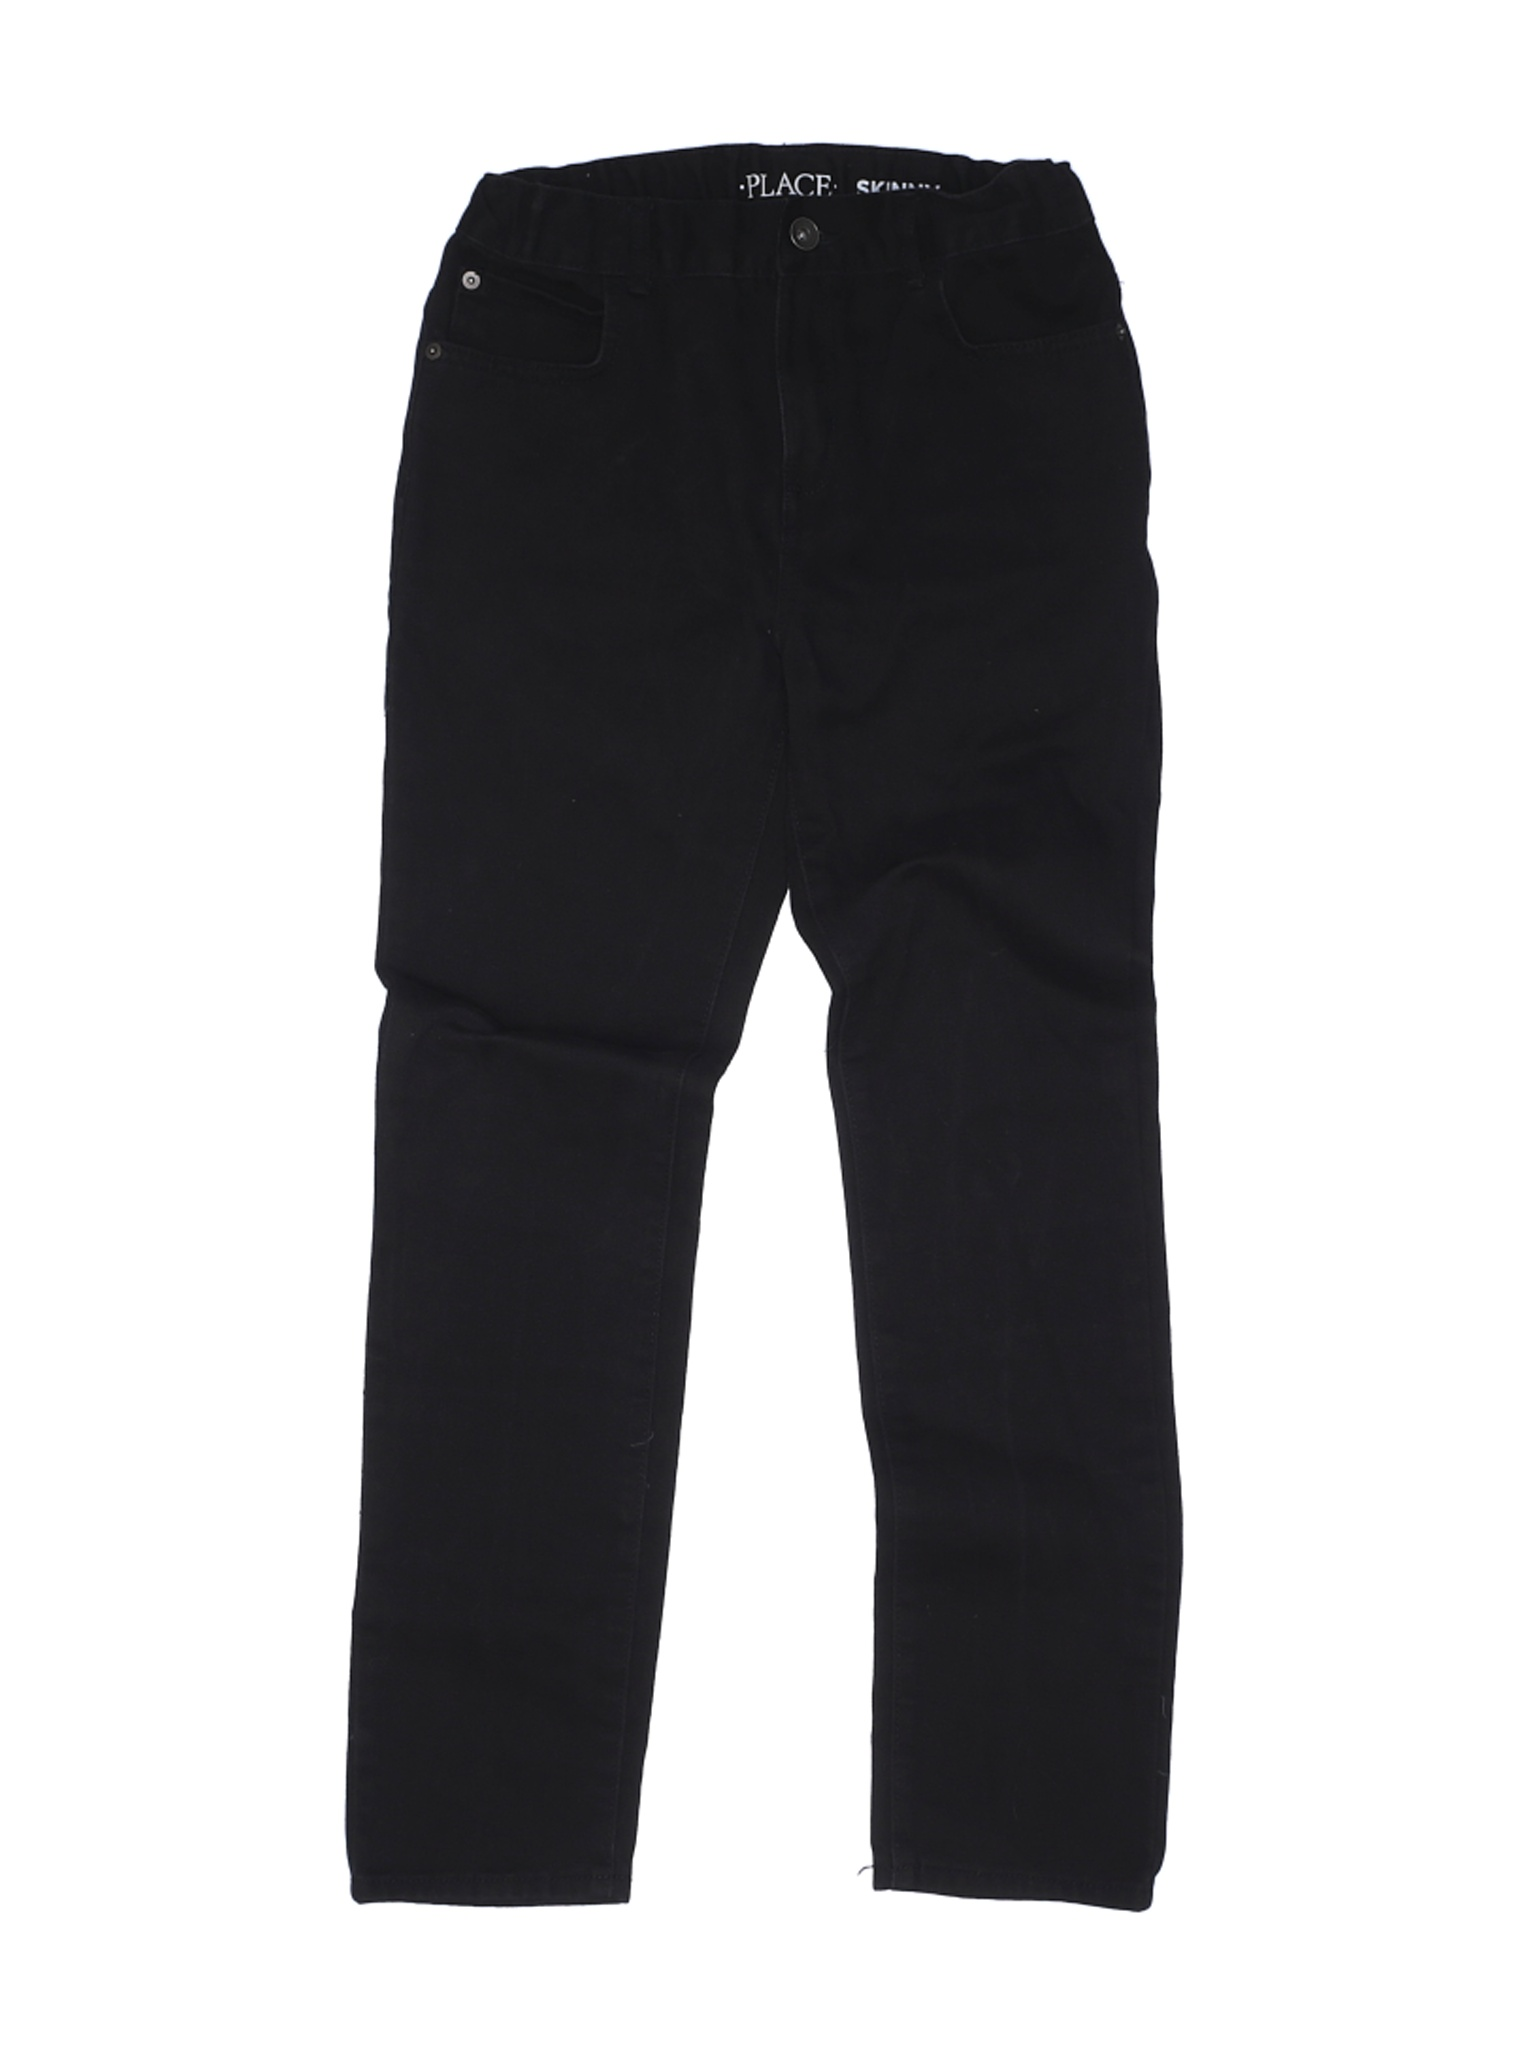 Details about  /NWT The Children/'s Place Boys Lined Wind//Warm Up Pants Size 14 Gray Nickel